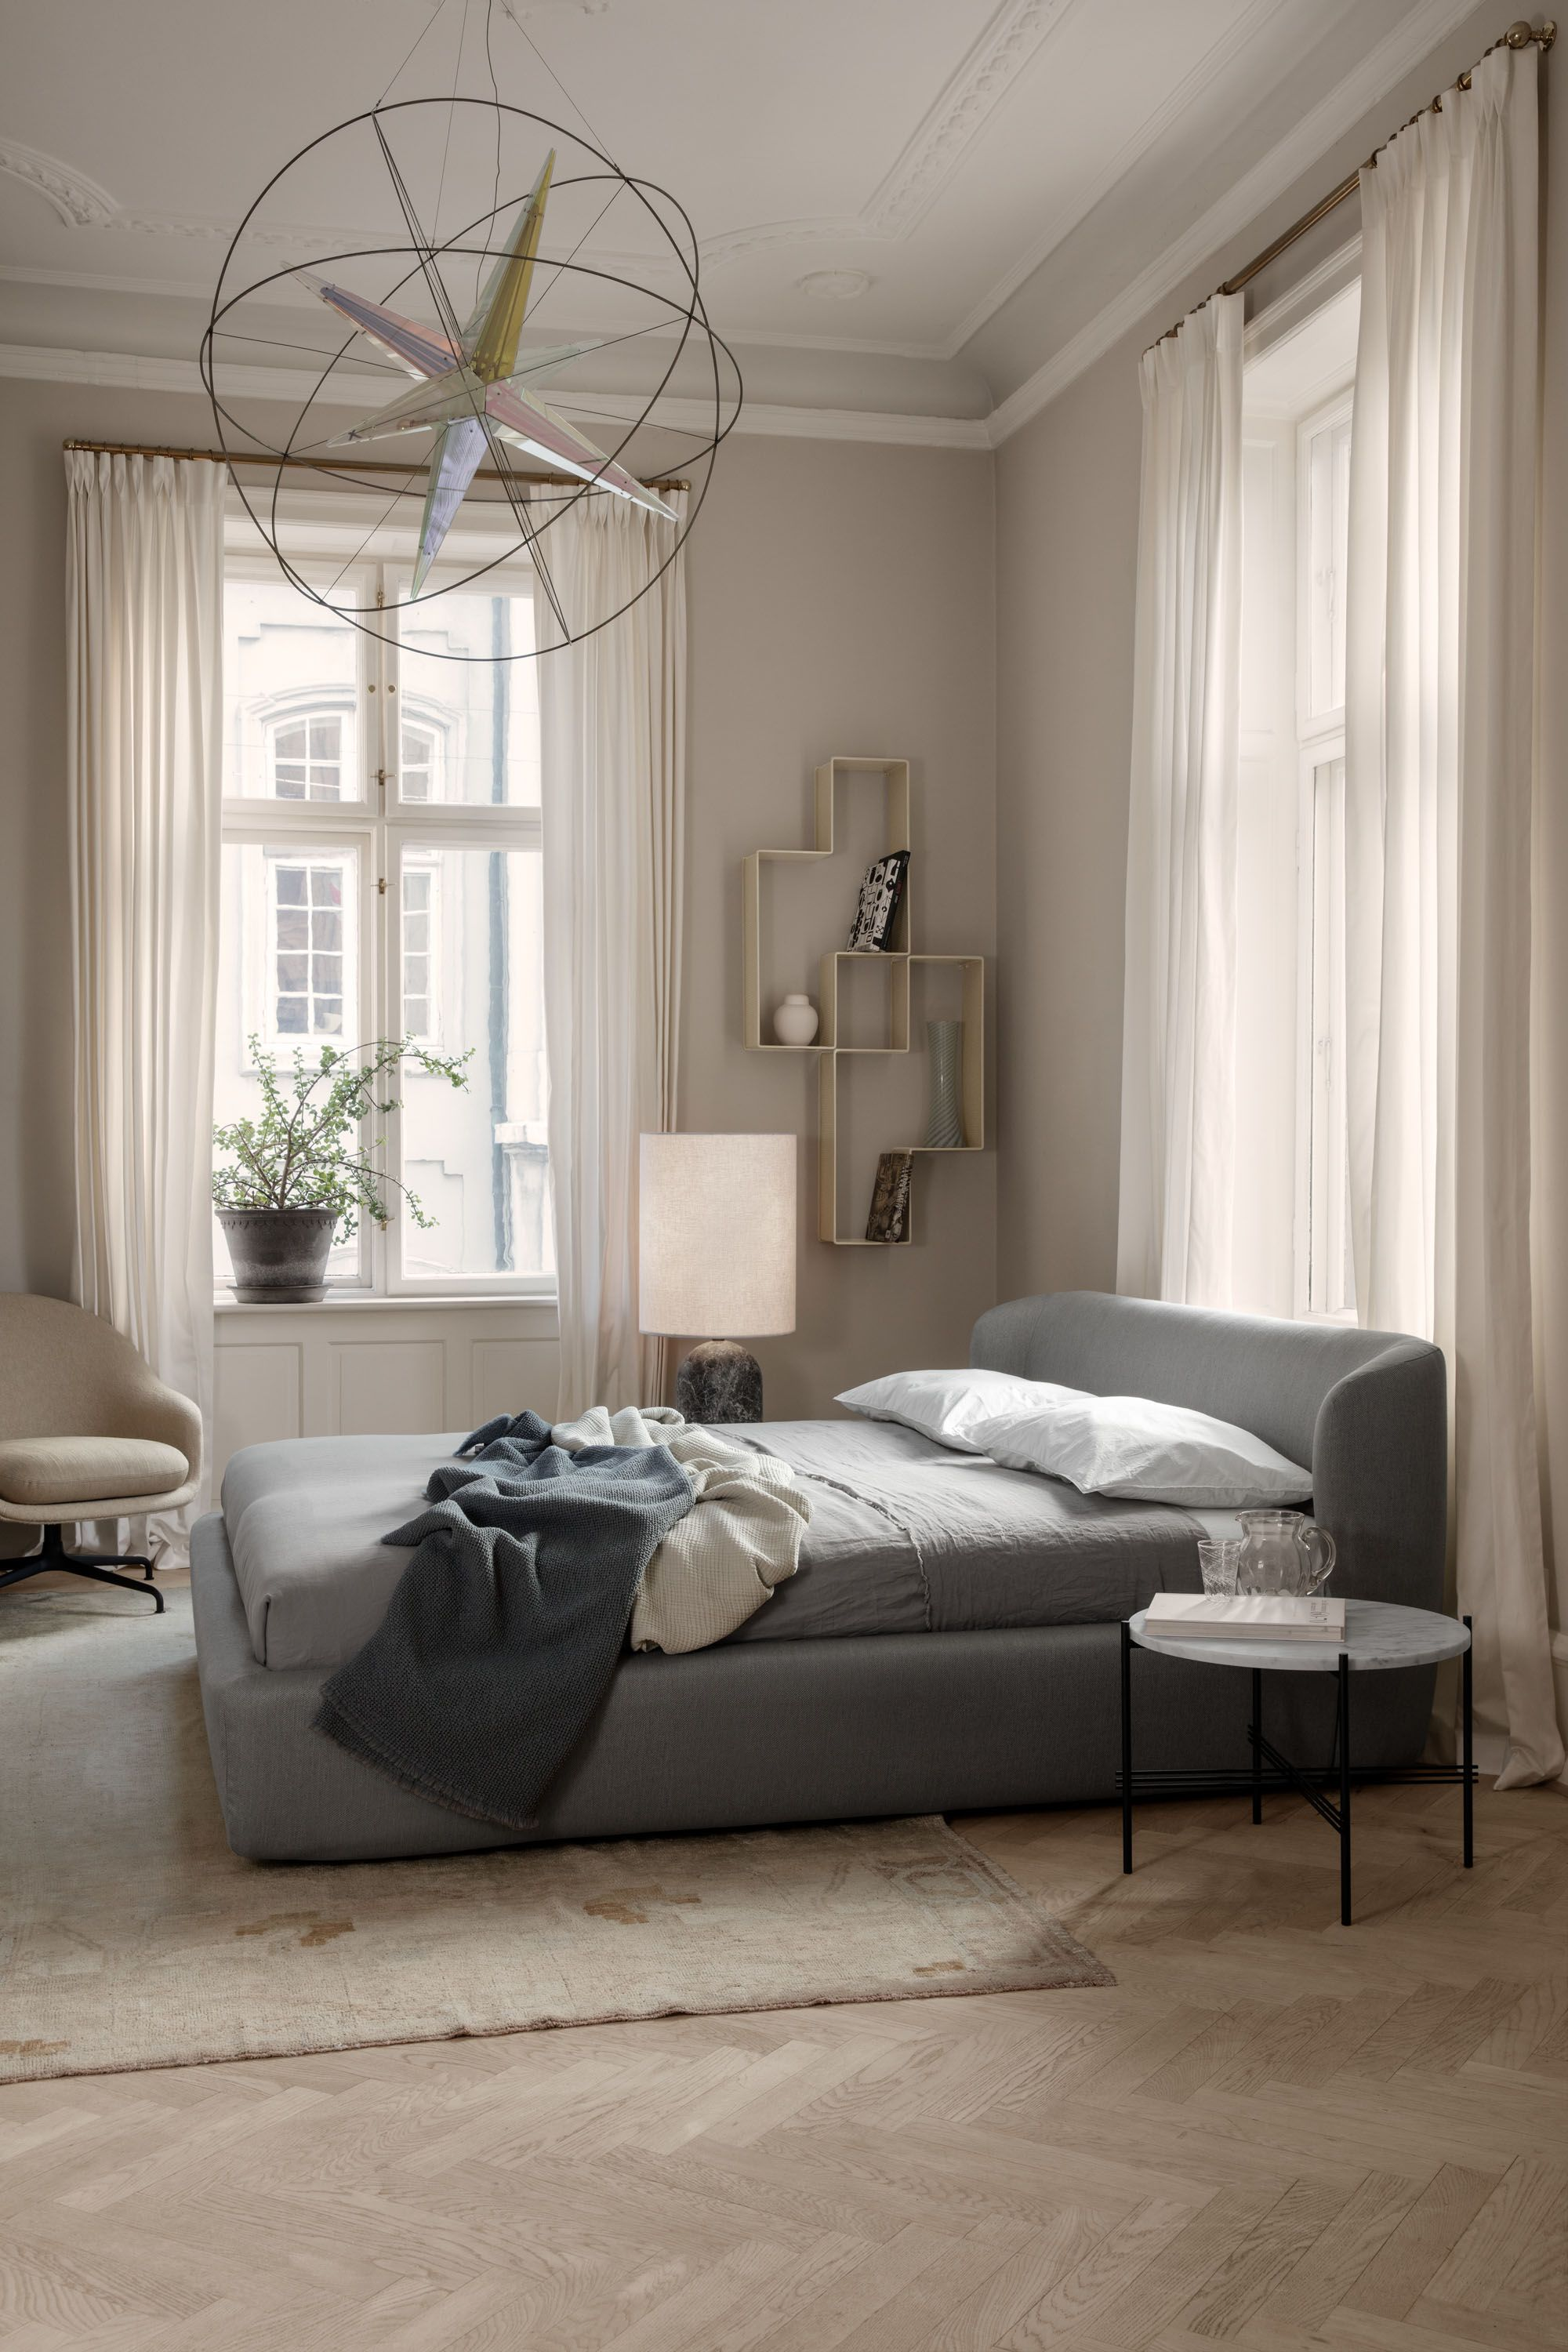 Gubi Stay Bed By Space Copenhagen Bedroom Ambiance